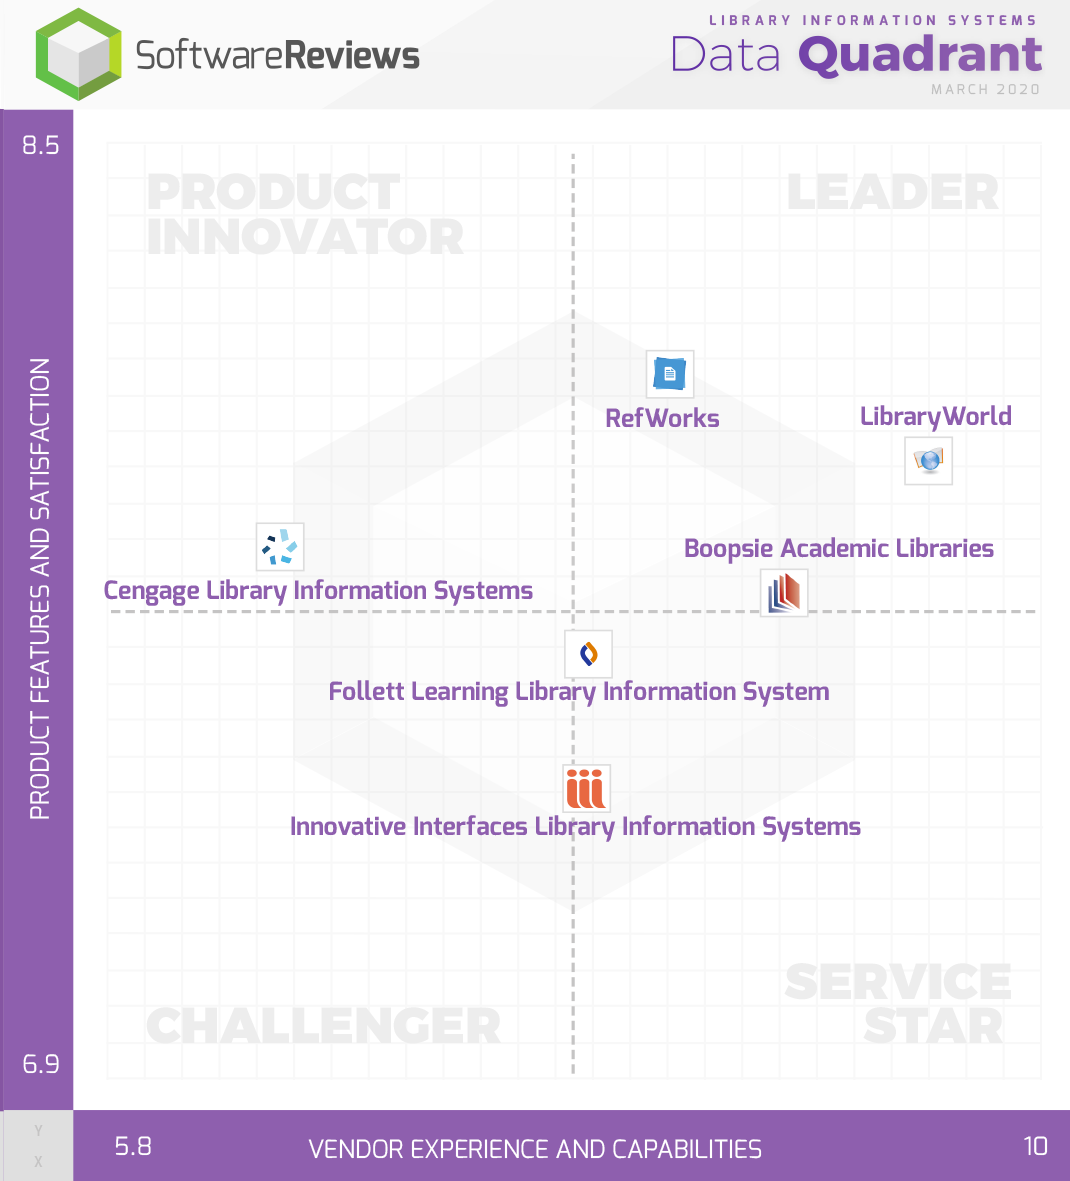 Library Information Systems Data Quadrant